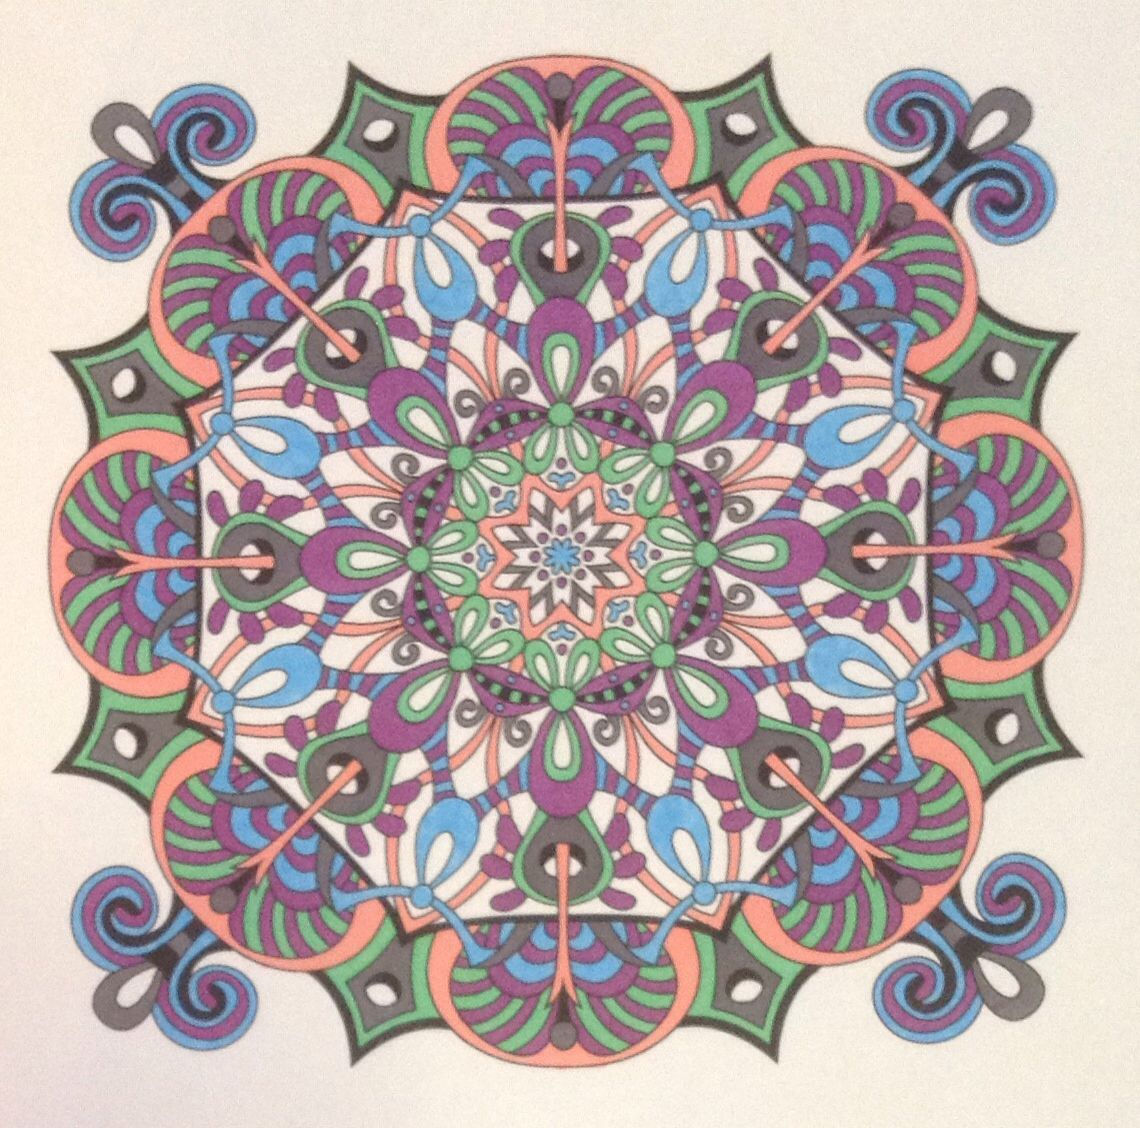 Angie Grace Mandala. Free download from her website. Coloured with sharpies. October 2015.